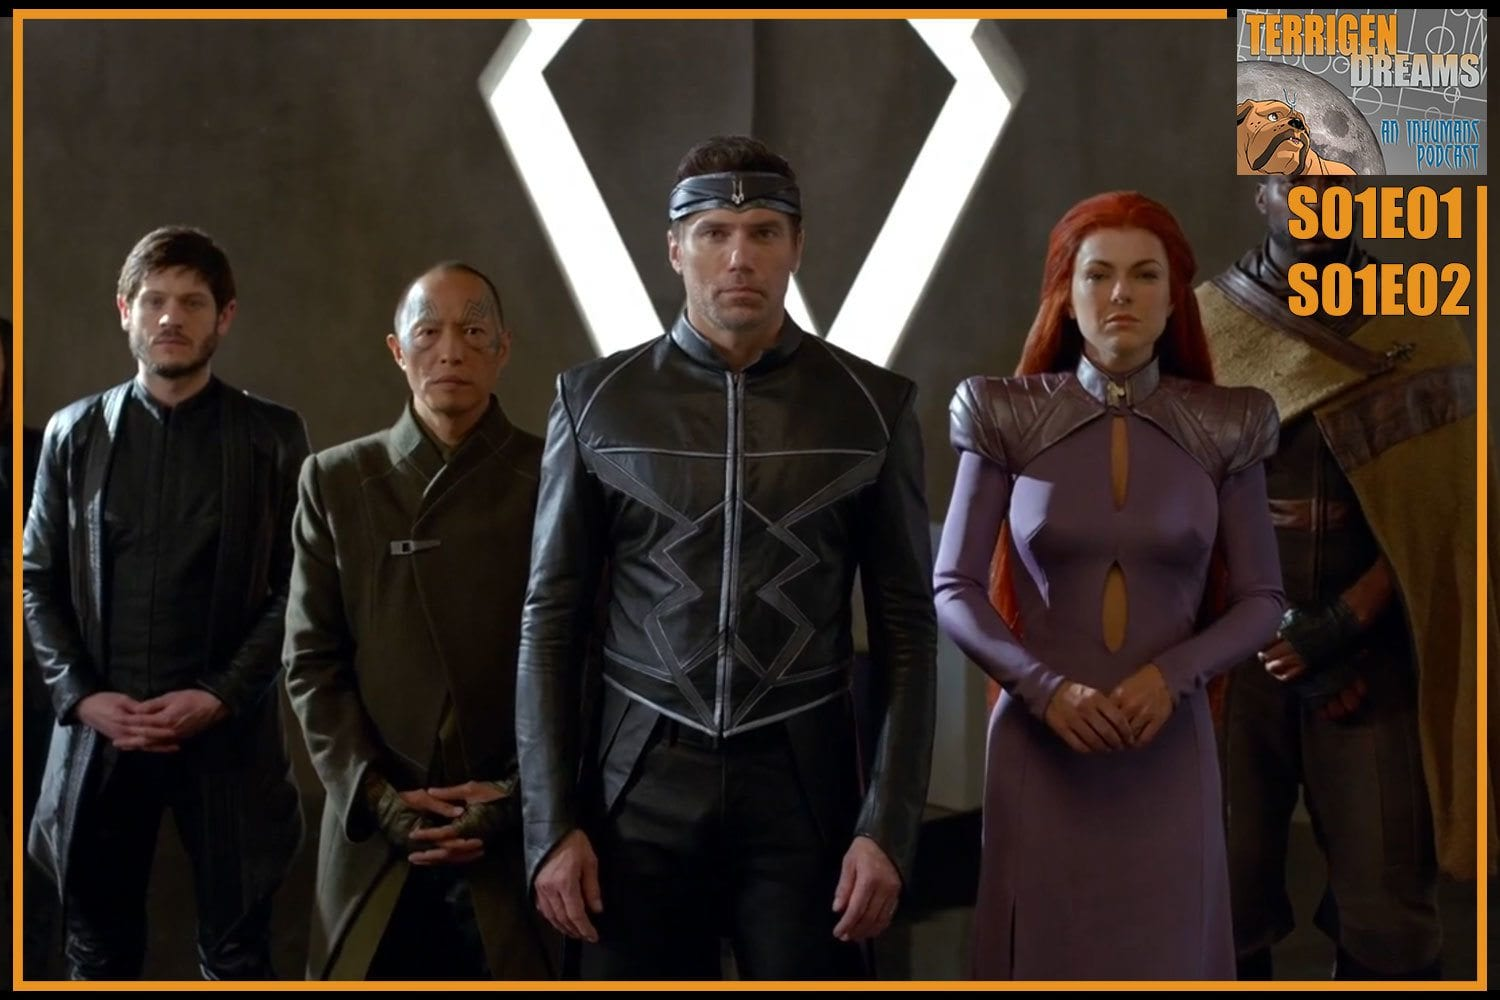 Behold...The Inhumans